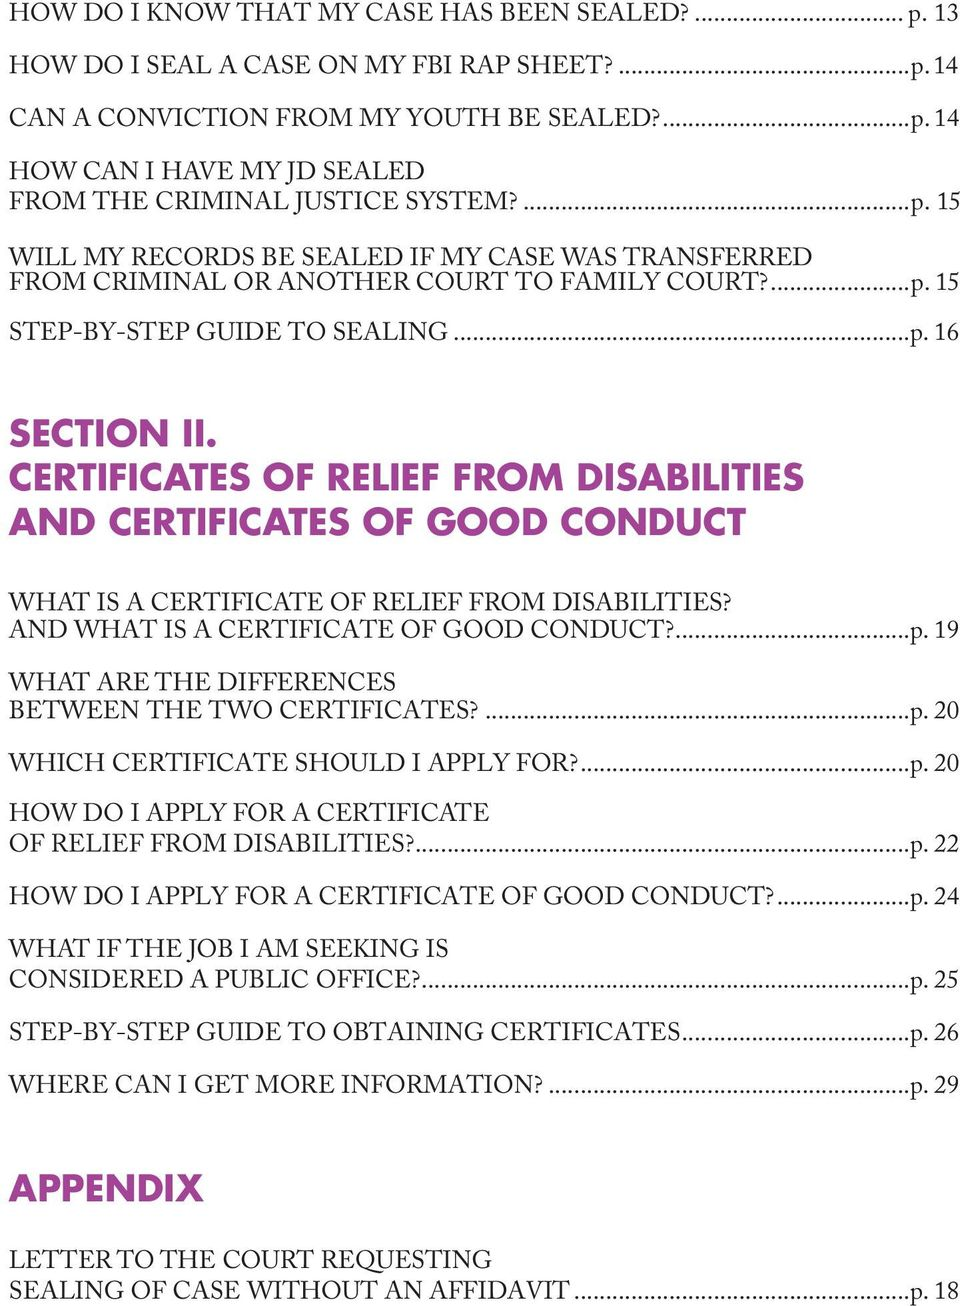 Lowering Criminal Record Barriers Certificates Of Reliefgood